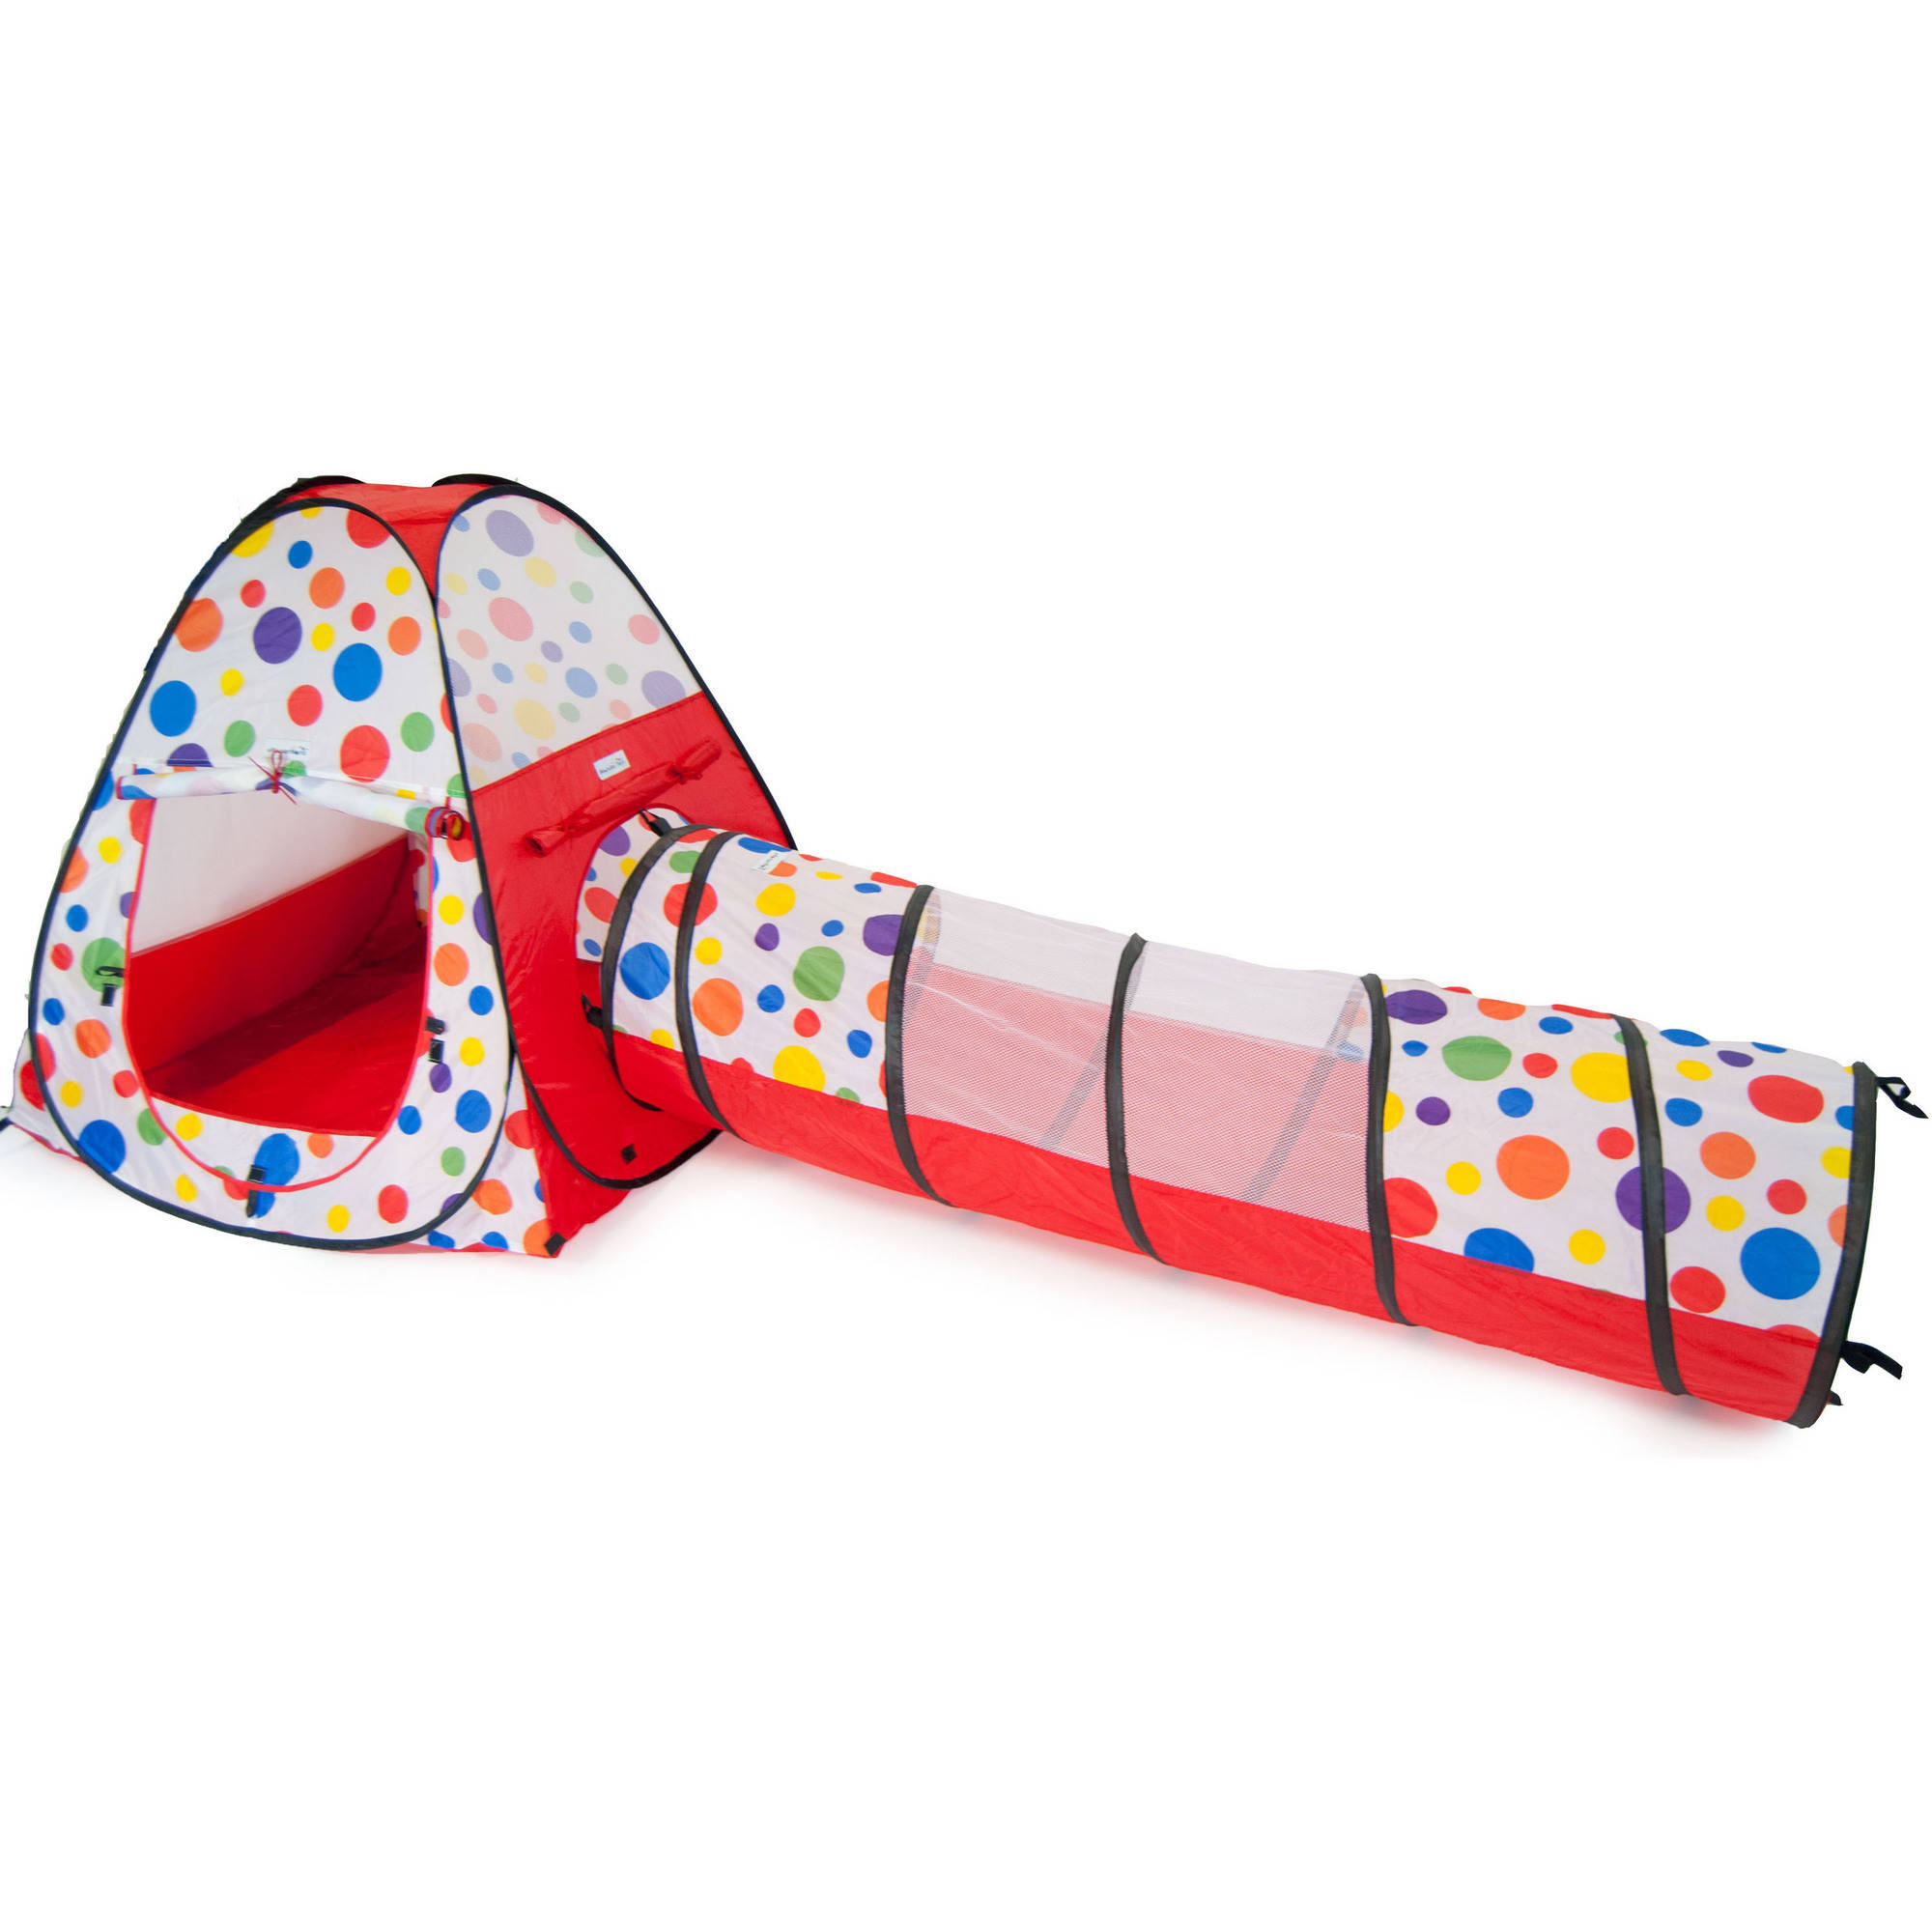 eWonderWorld Polka Dot Teepee Ball Tent House with Tunnel and Safety Meshing for Child Play Visibility and Tote, 2 Piece